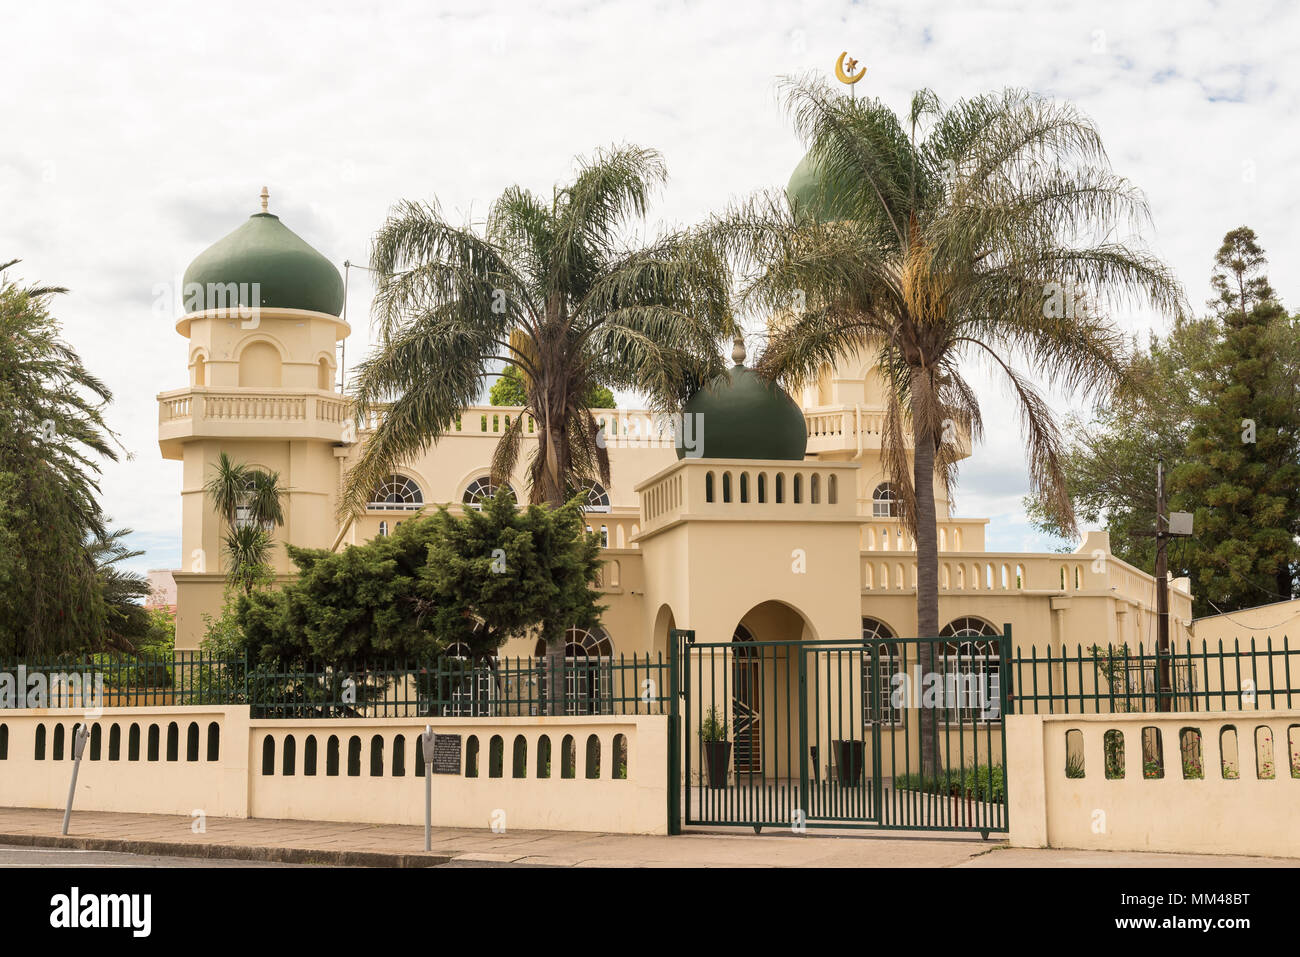 DUNDEE, SOUTH AFRICA - MARCH 21, 2018: A mosque, with palm trees in front, in Dundee in the Kwazulu-Natal Province - Stock Image